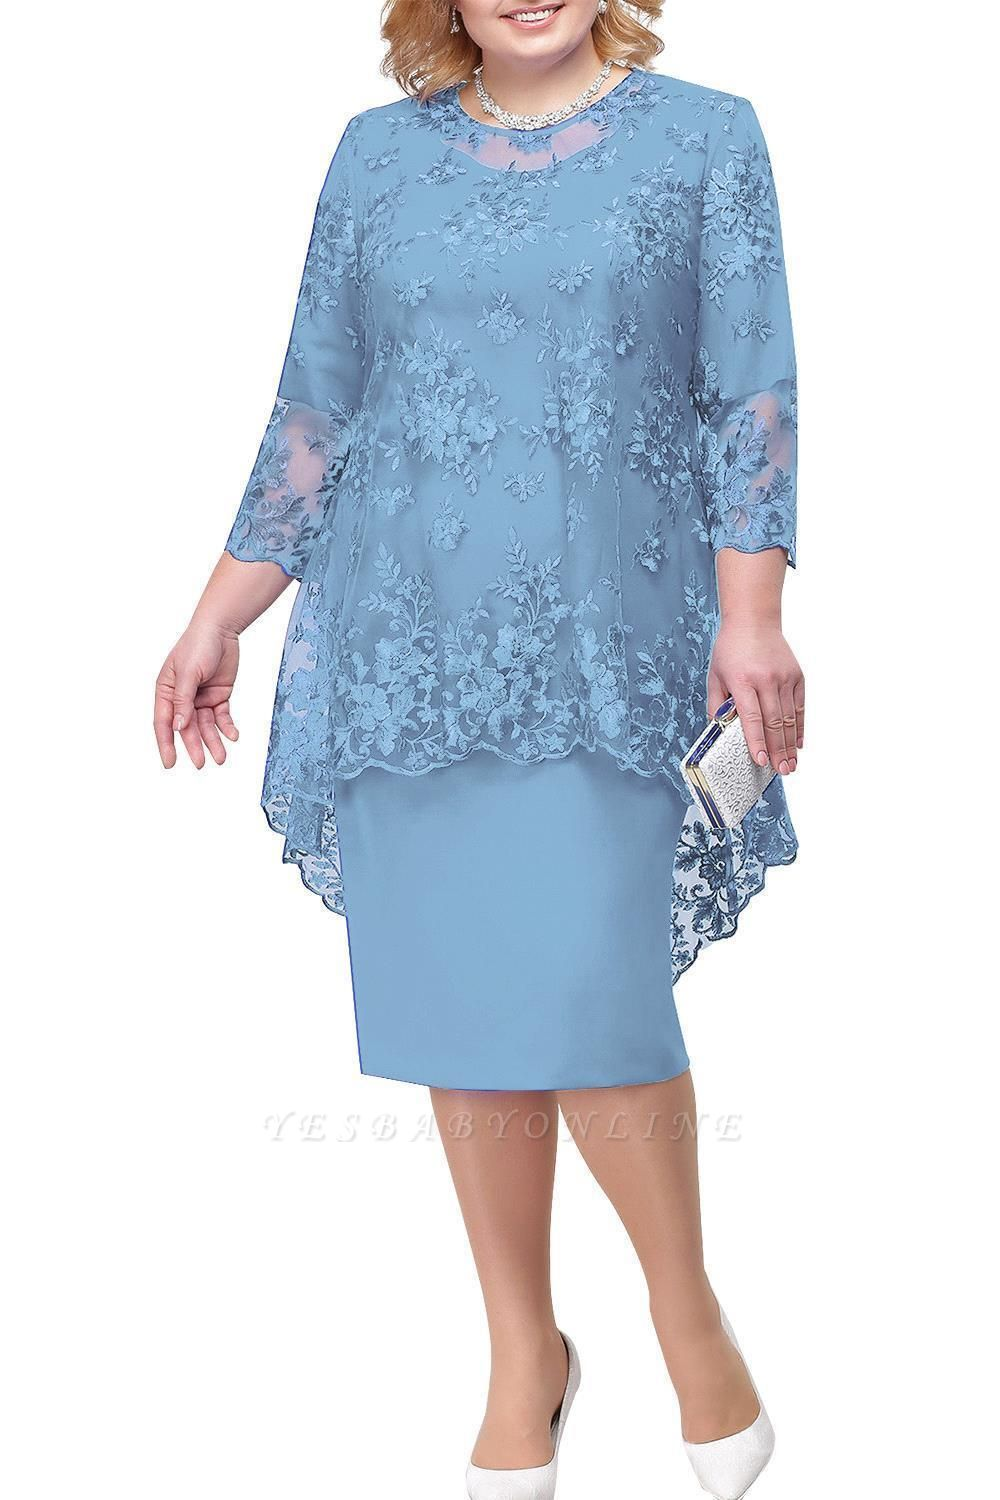 Tulle Lace 3/4 Sleeves Knee Length Mother of Bride Dress